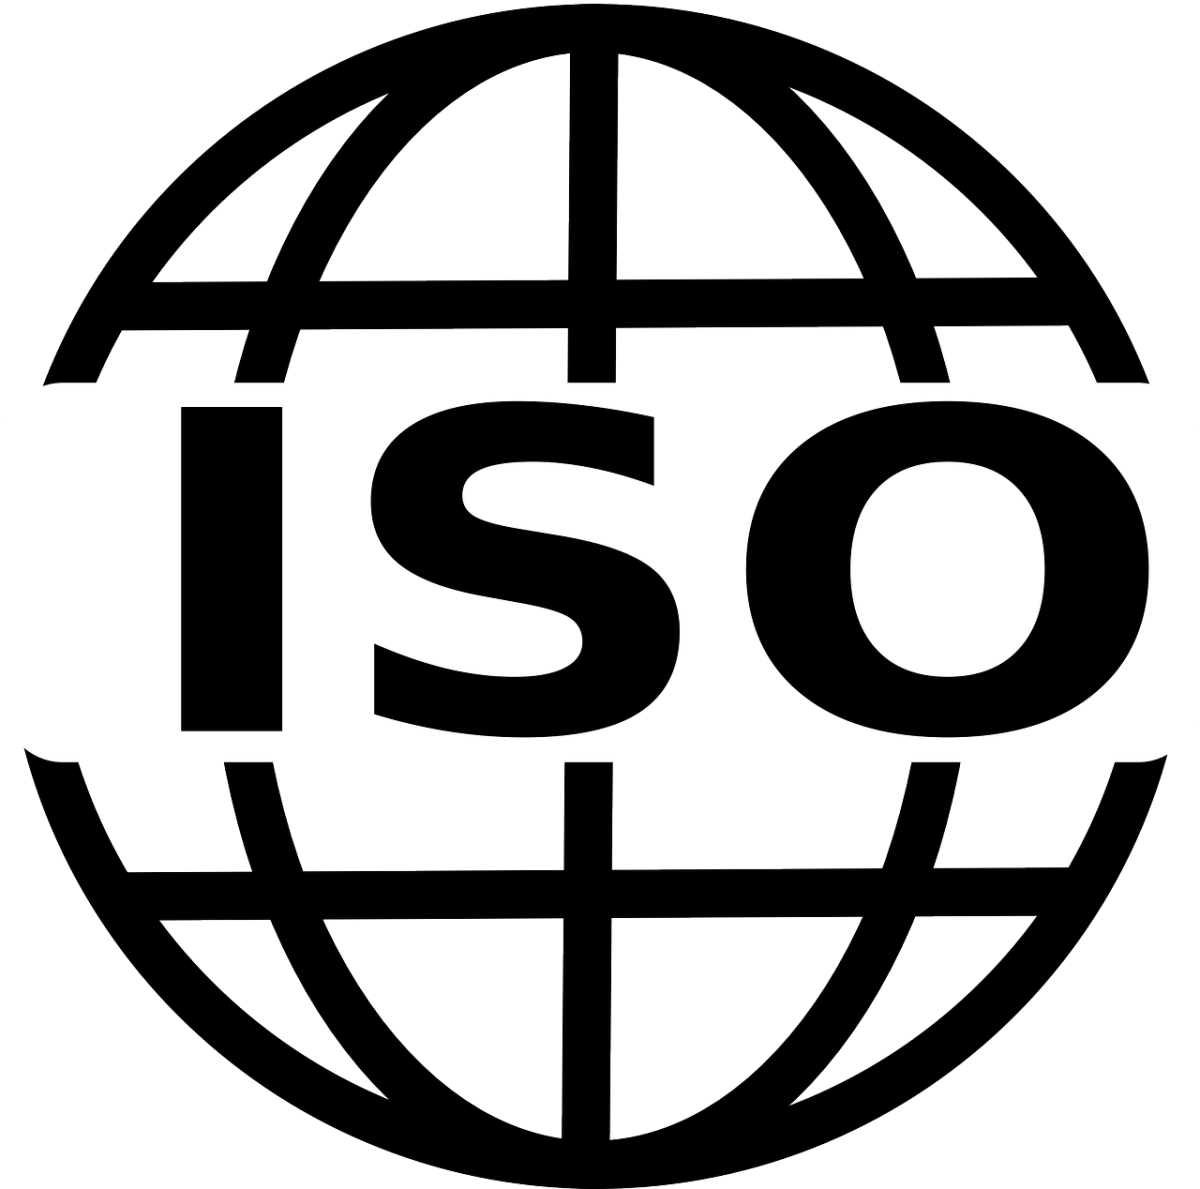 Best Webinars: Transition to ISO 9001:2015 and ISO 14001:2015